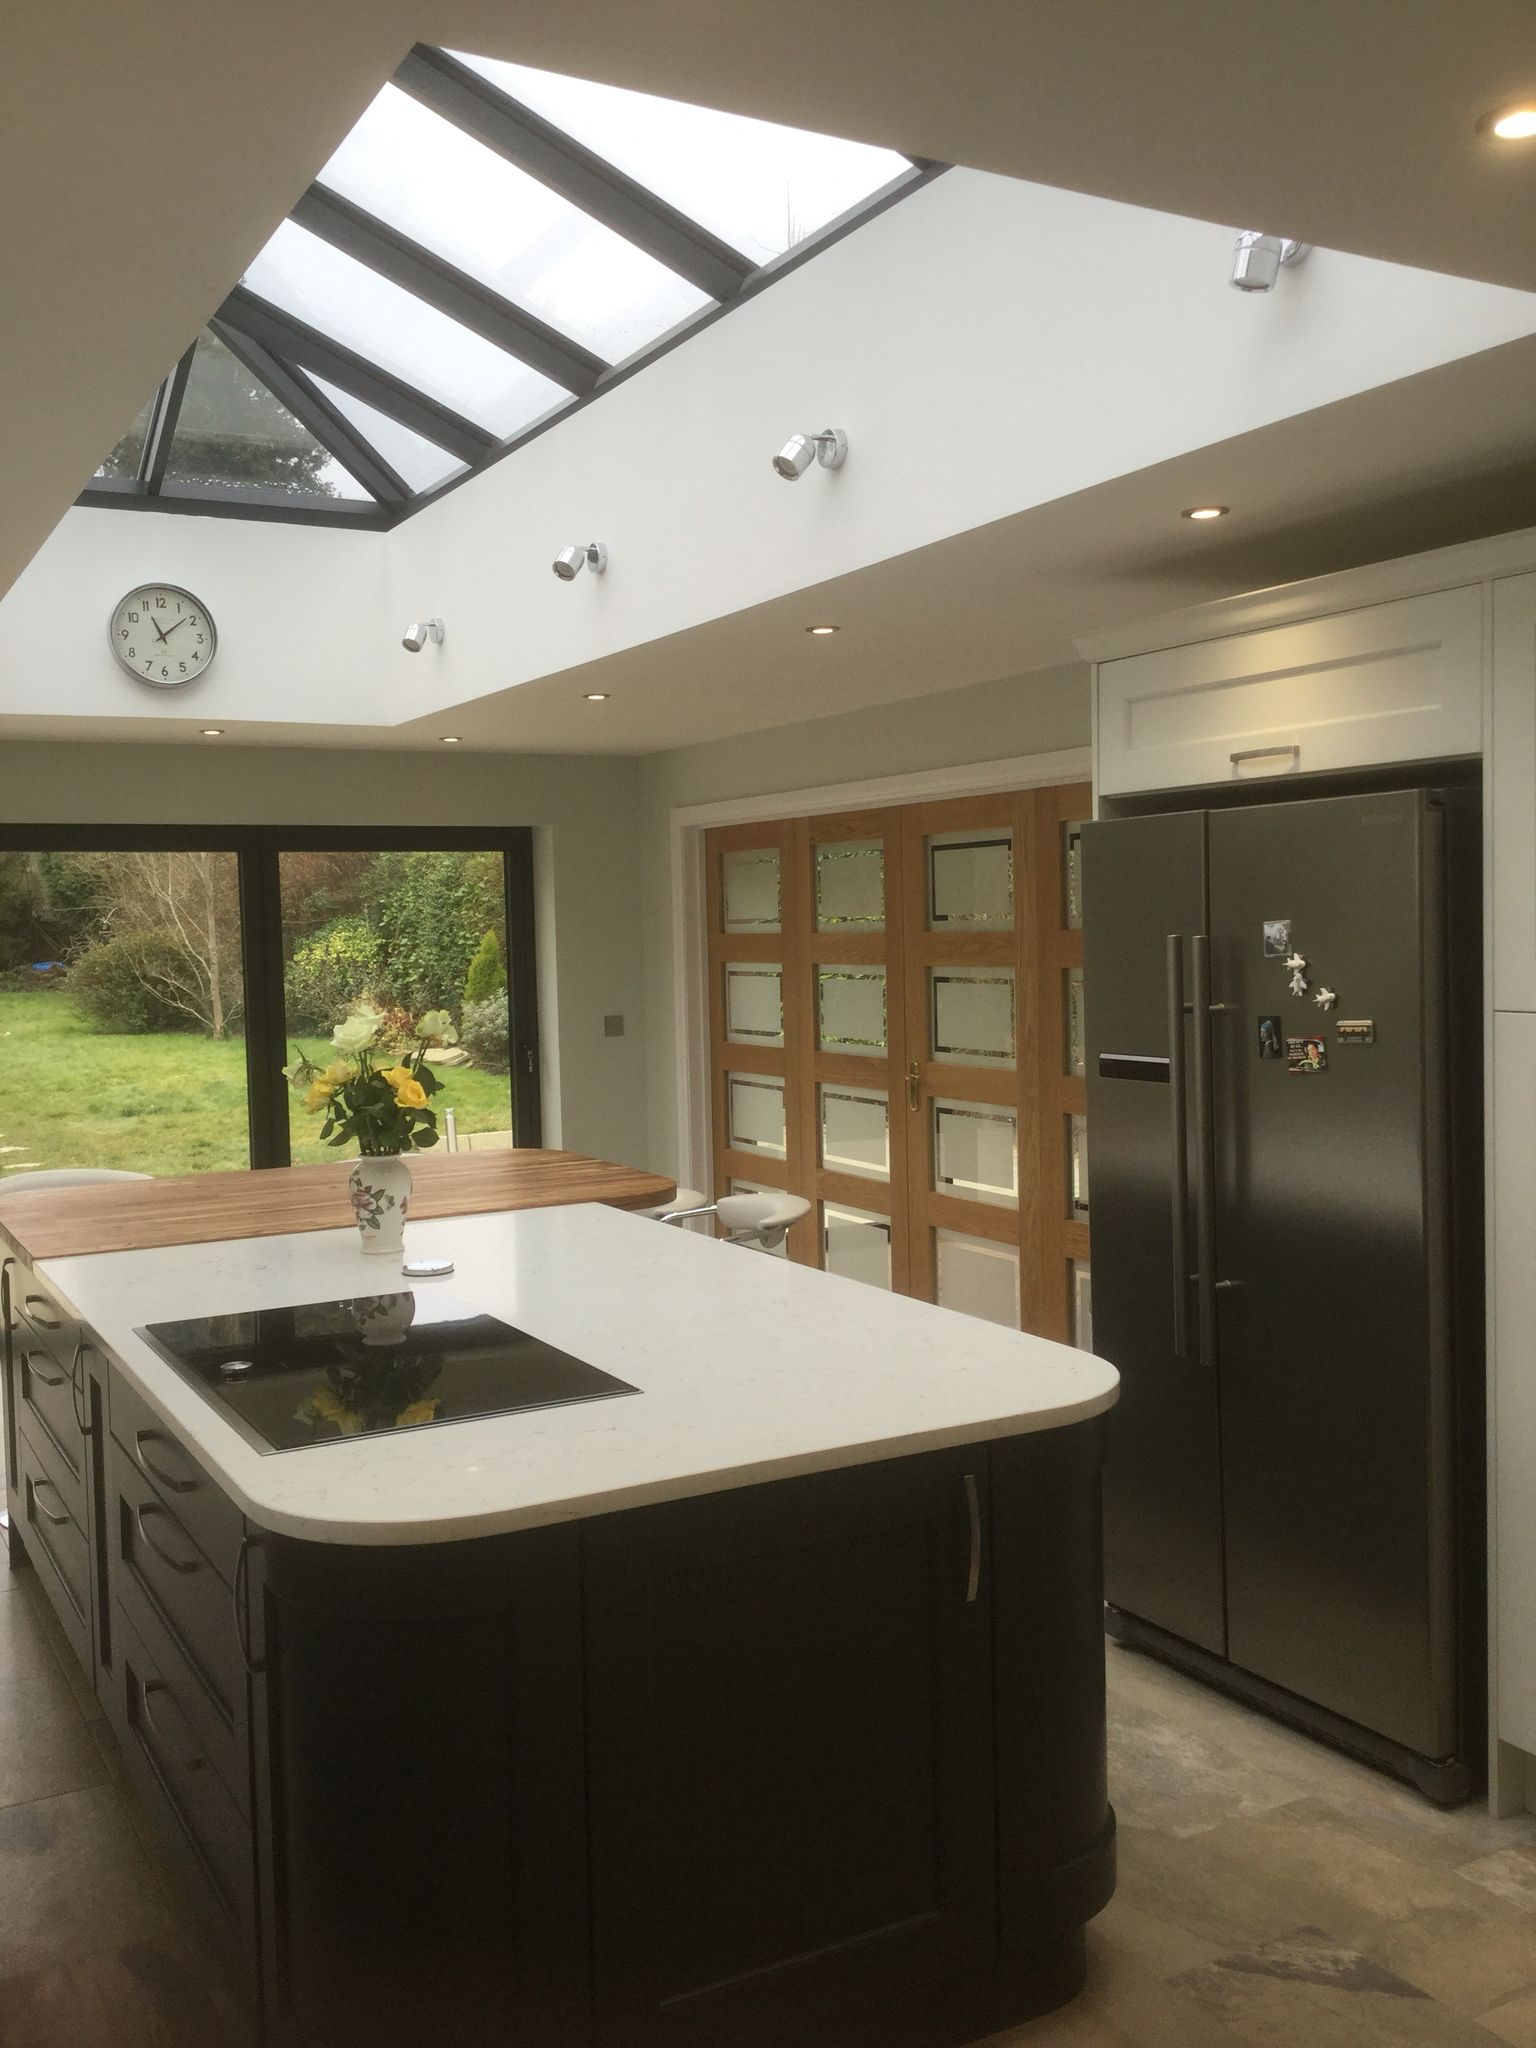 kitchen island lanterns electrical outlets roof lantern over our house on a hill